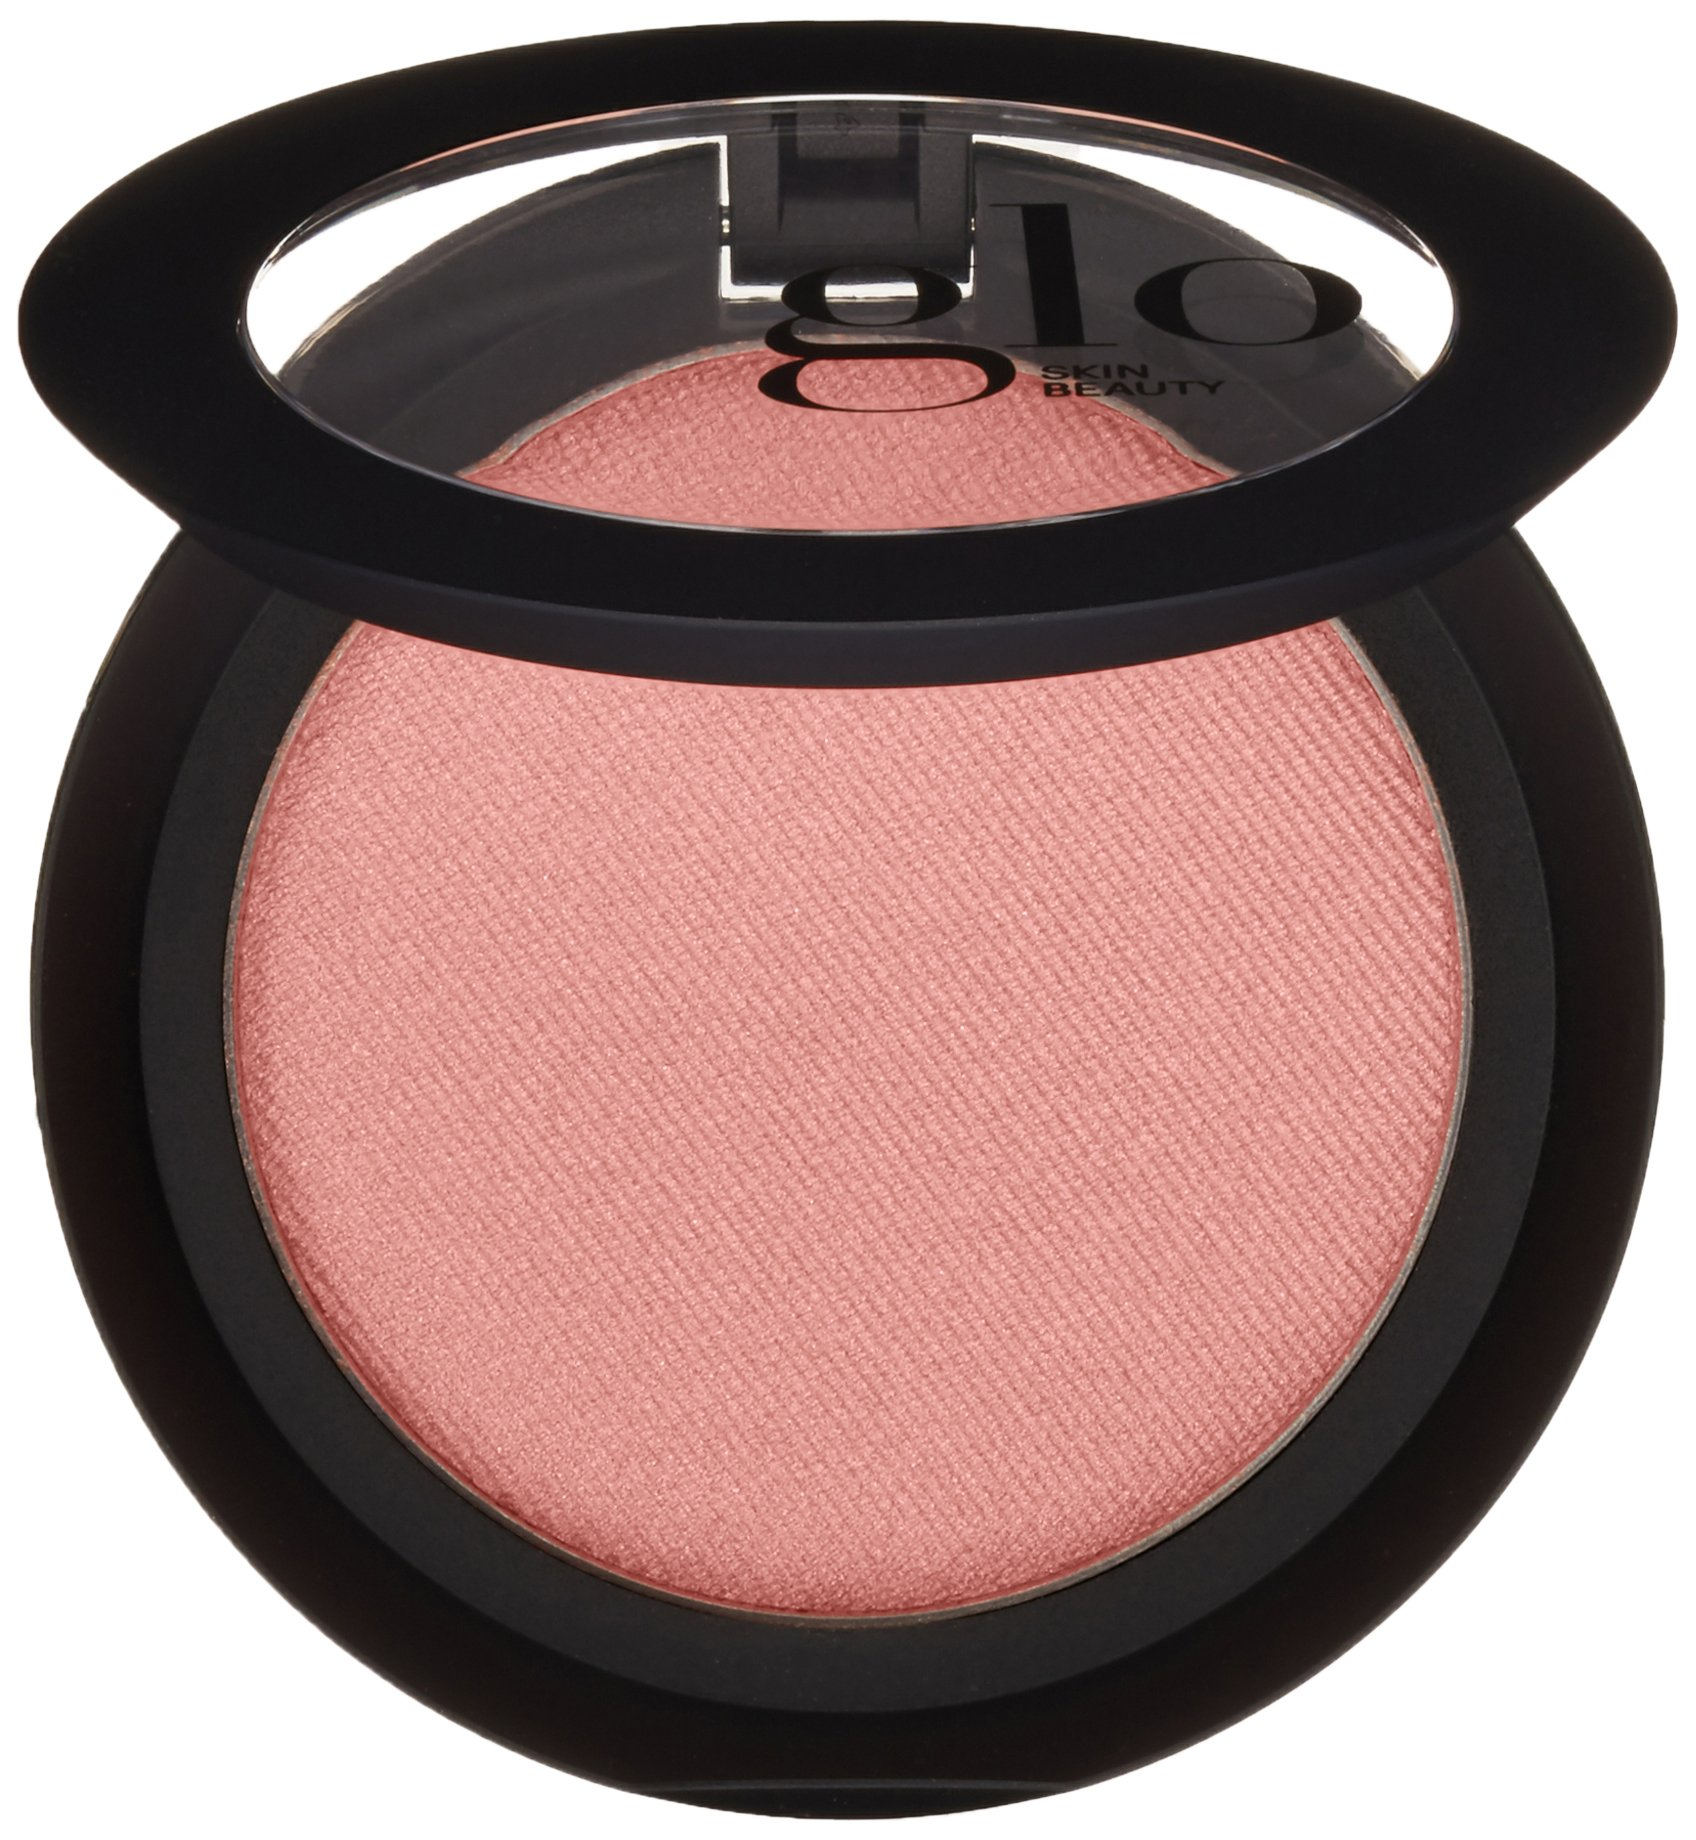 Glo Skin Beauty Powder Blush in Melody - Matte Mid-toned Rose | 9 Shades | Cruelty Free, Talc Free Mineral Makeup